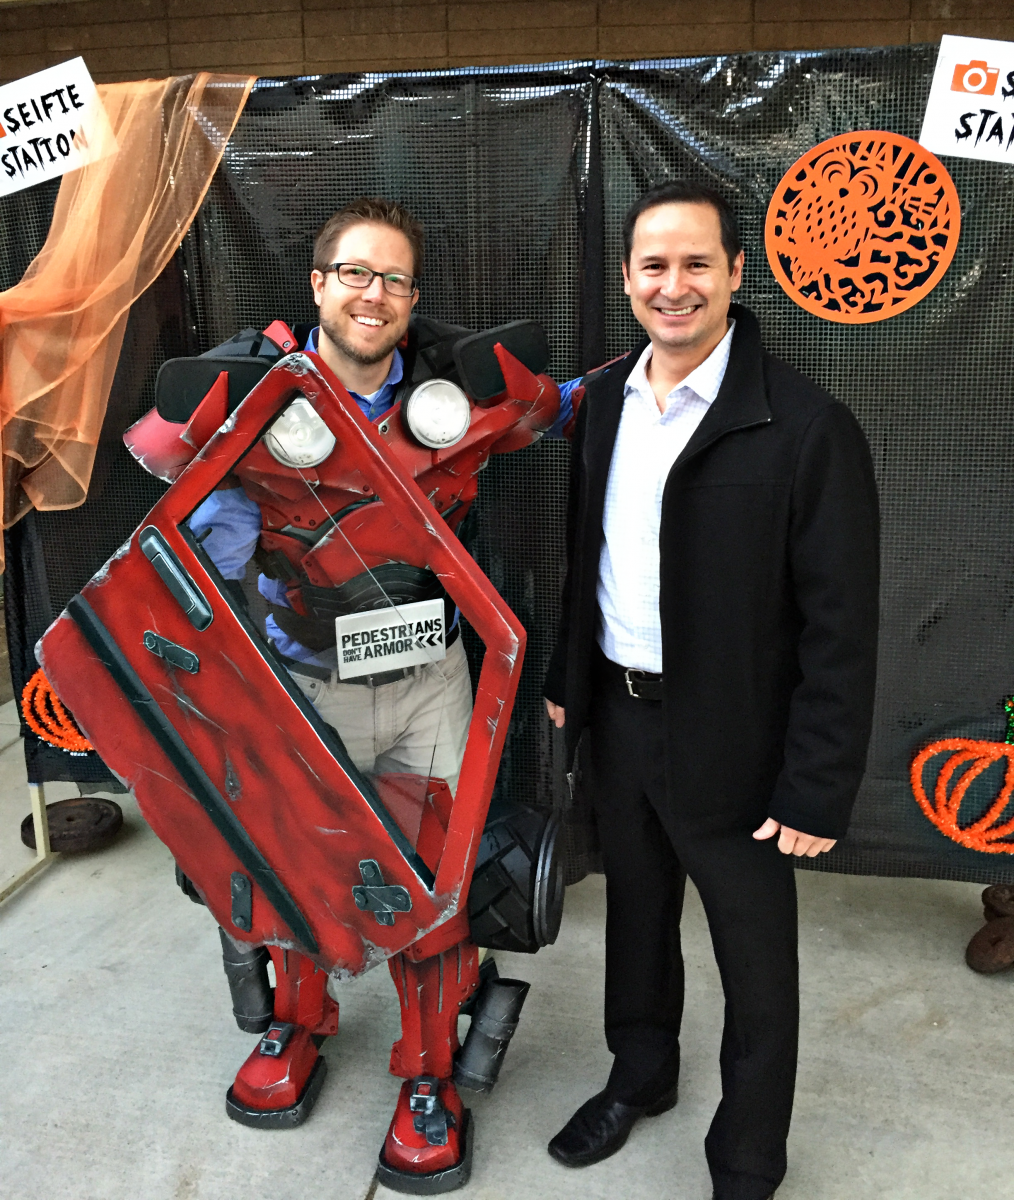 Image of Will C. Wood's Halloween-themed pedestrian safety fair features 'Pete Walker'